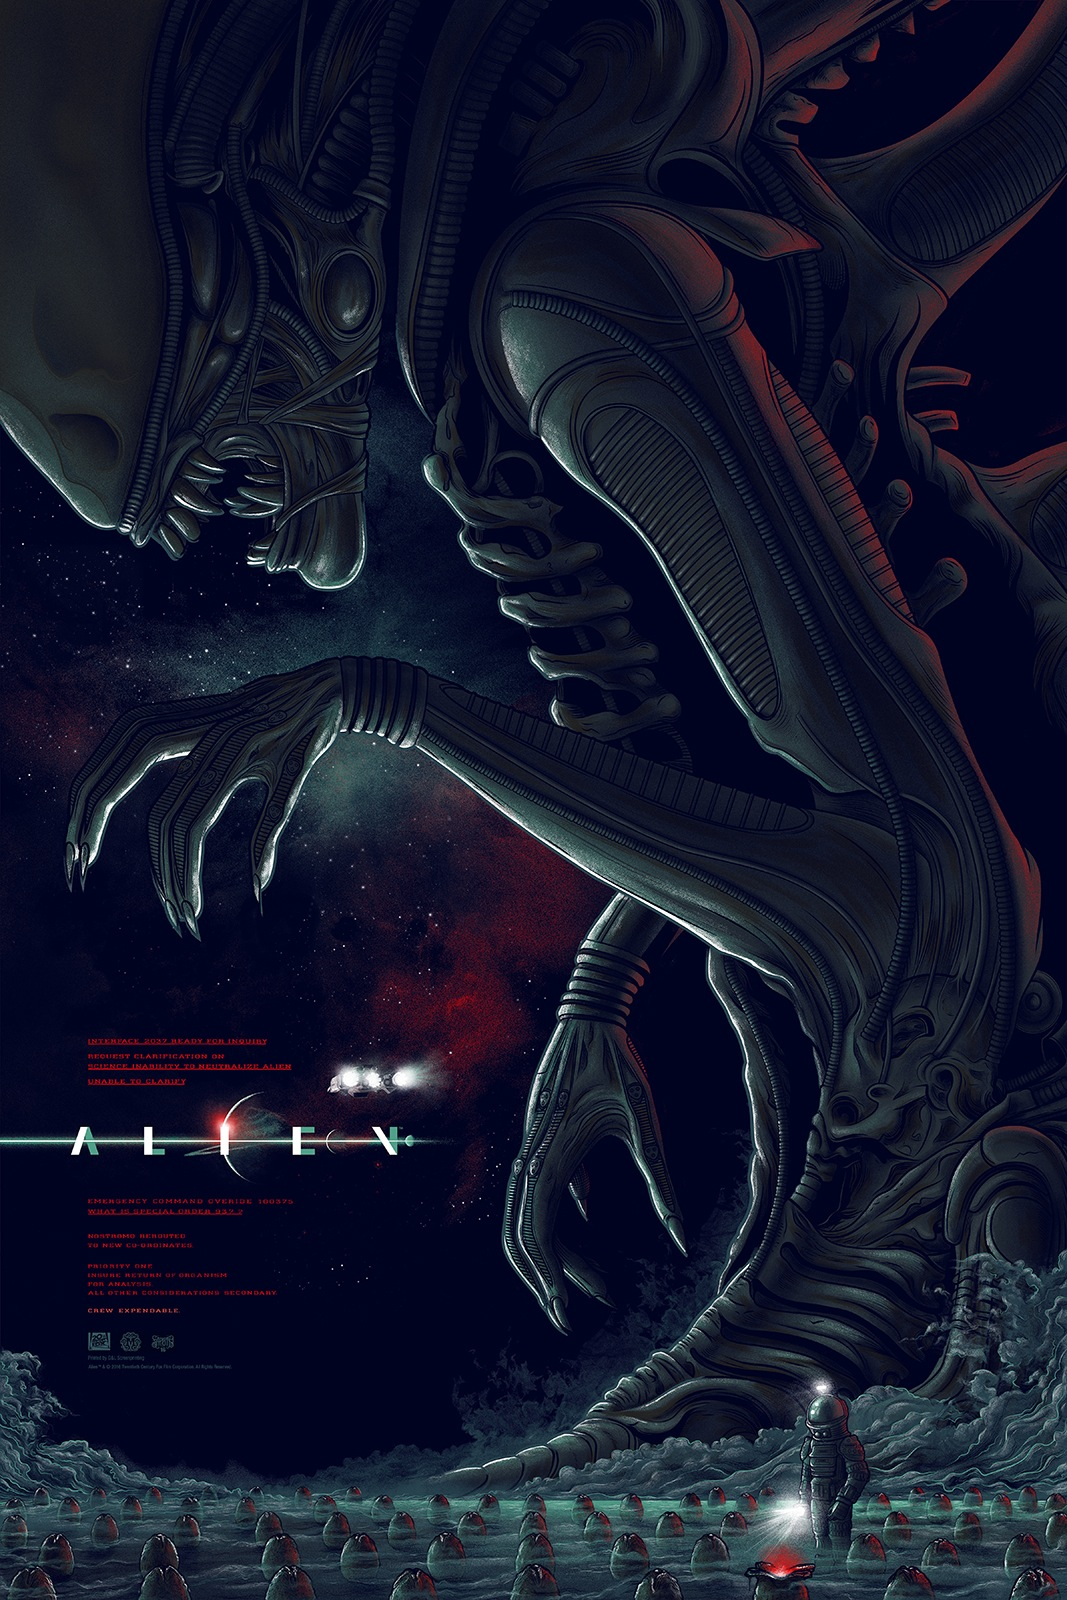 """Alien (Variant)"""" by Mike Saputo, Edition of 125, 24""""x36"""" Screen Print, Printed by D&L Screenprinting: $65"""